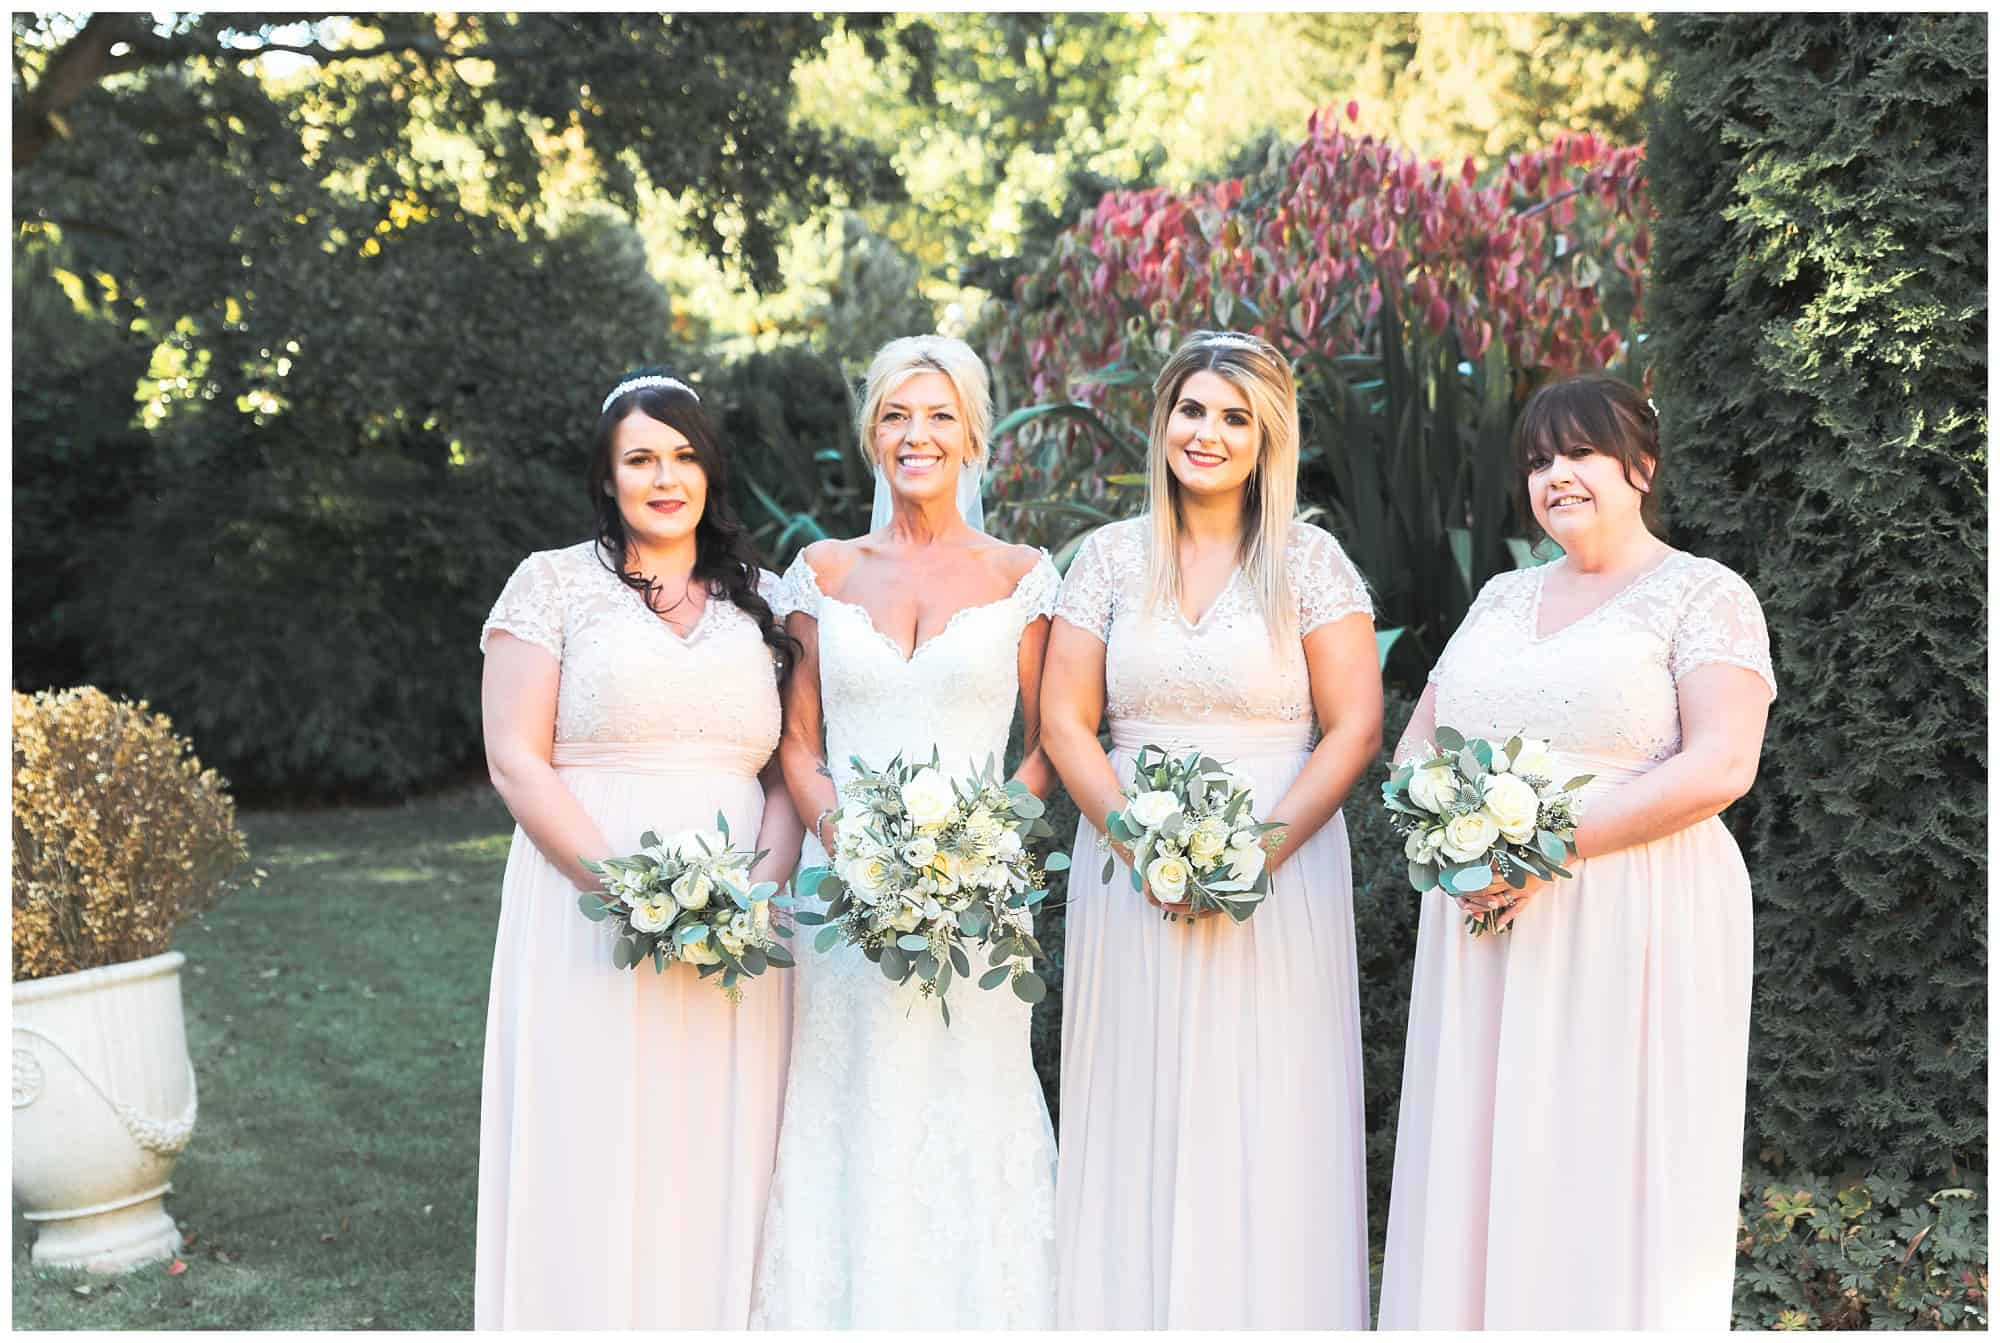 Whitley Hall Hotel Wedding - outside bride with her brides maids